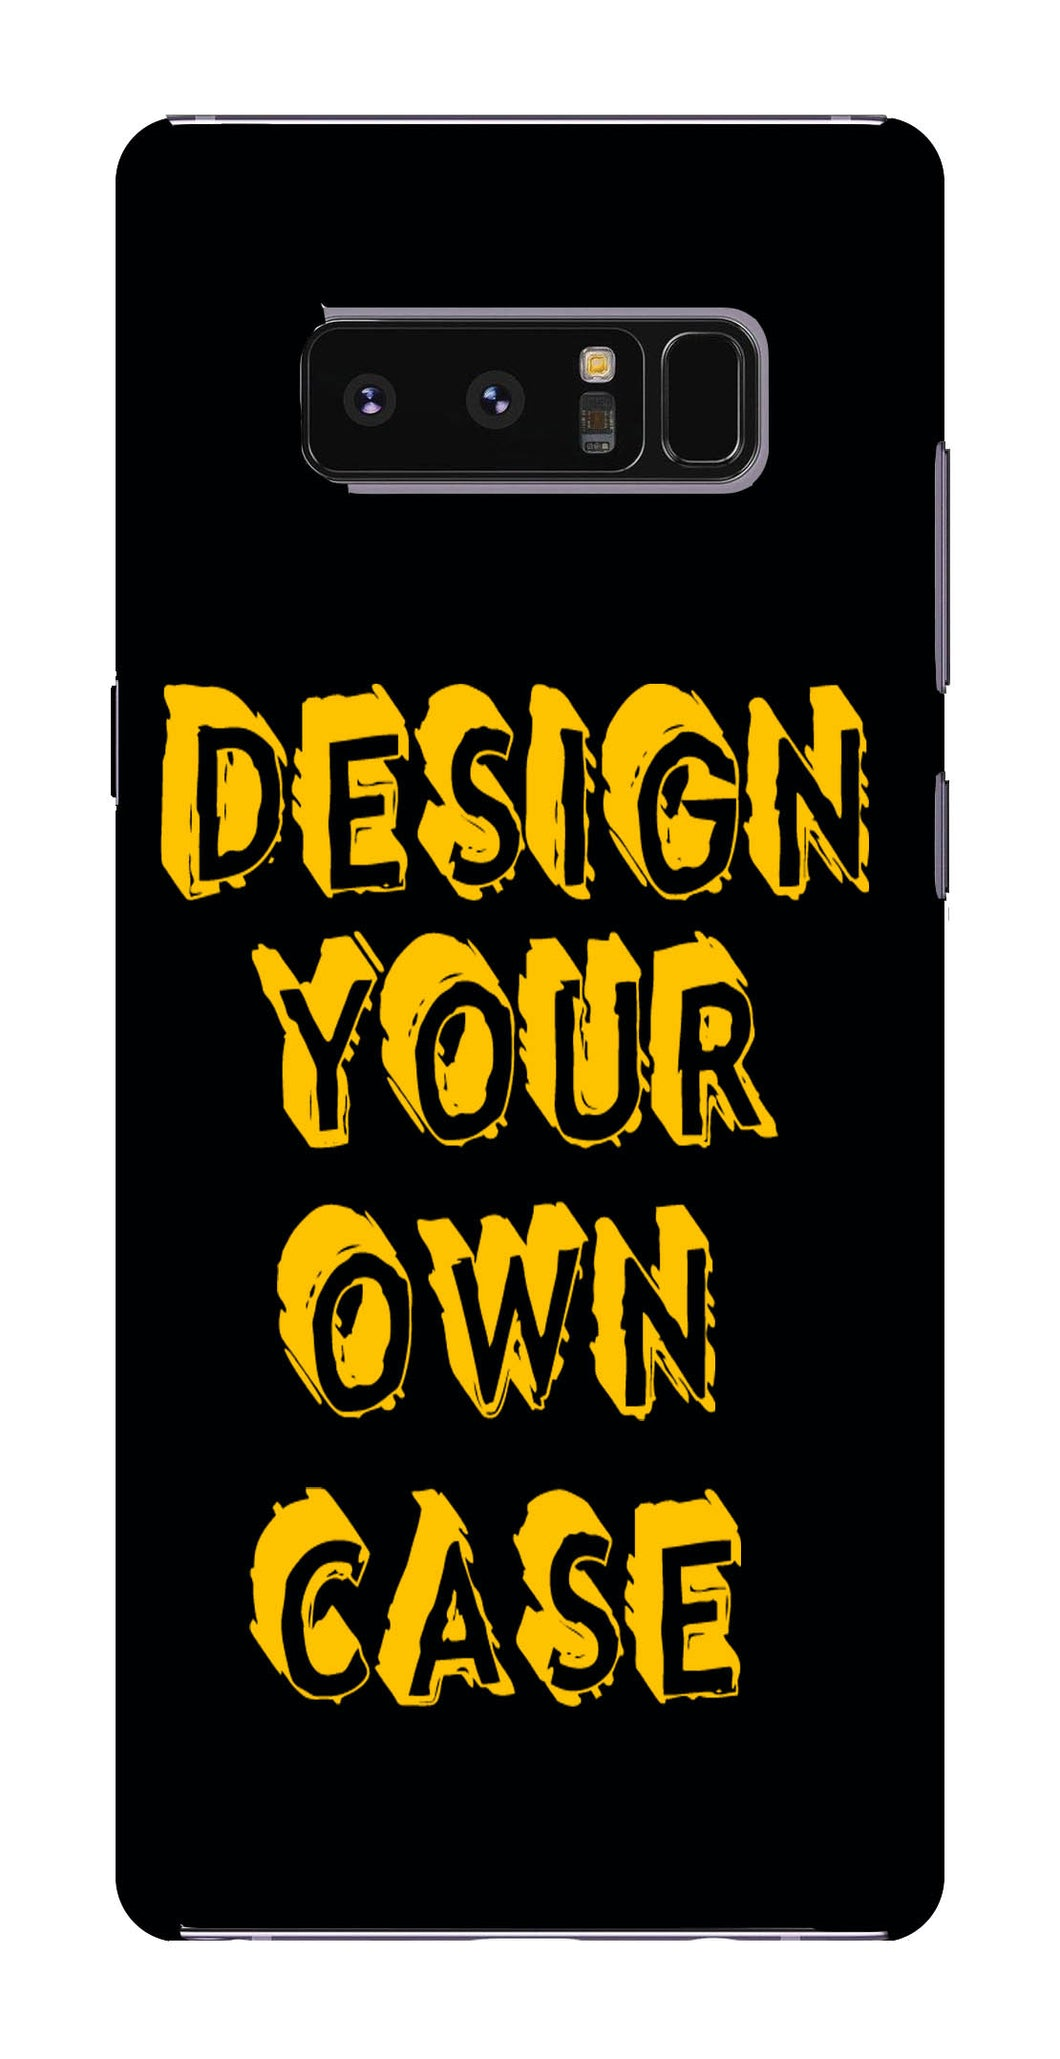 DESIGN YOUR OWN CASE for Samsung Galaxy Note 8